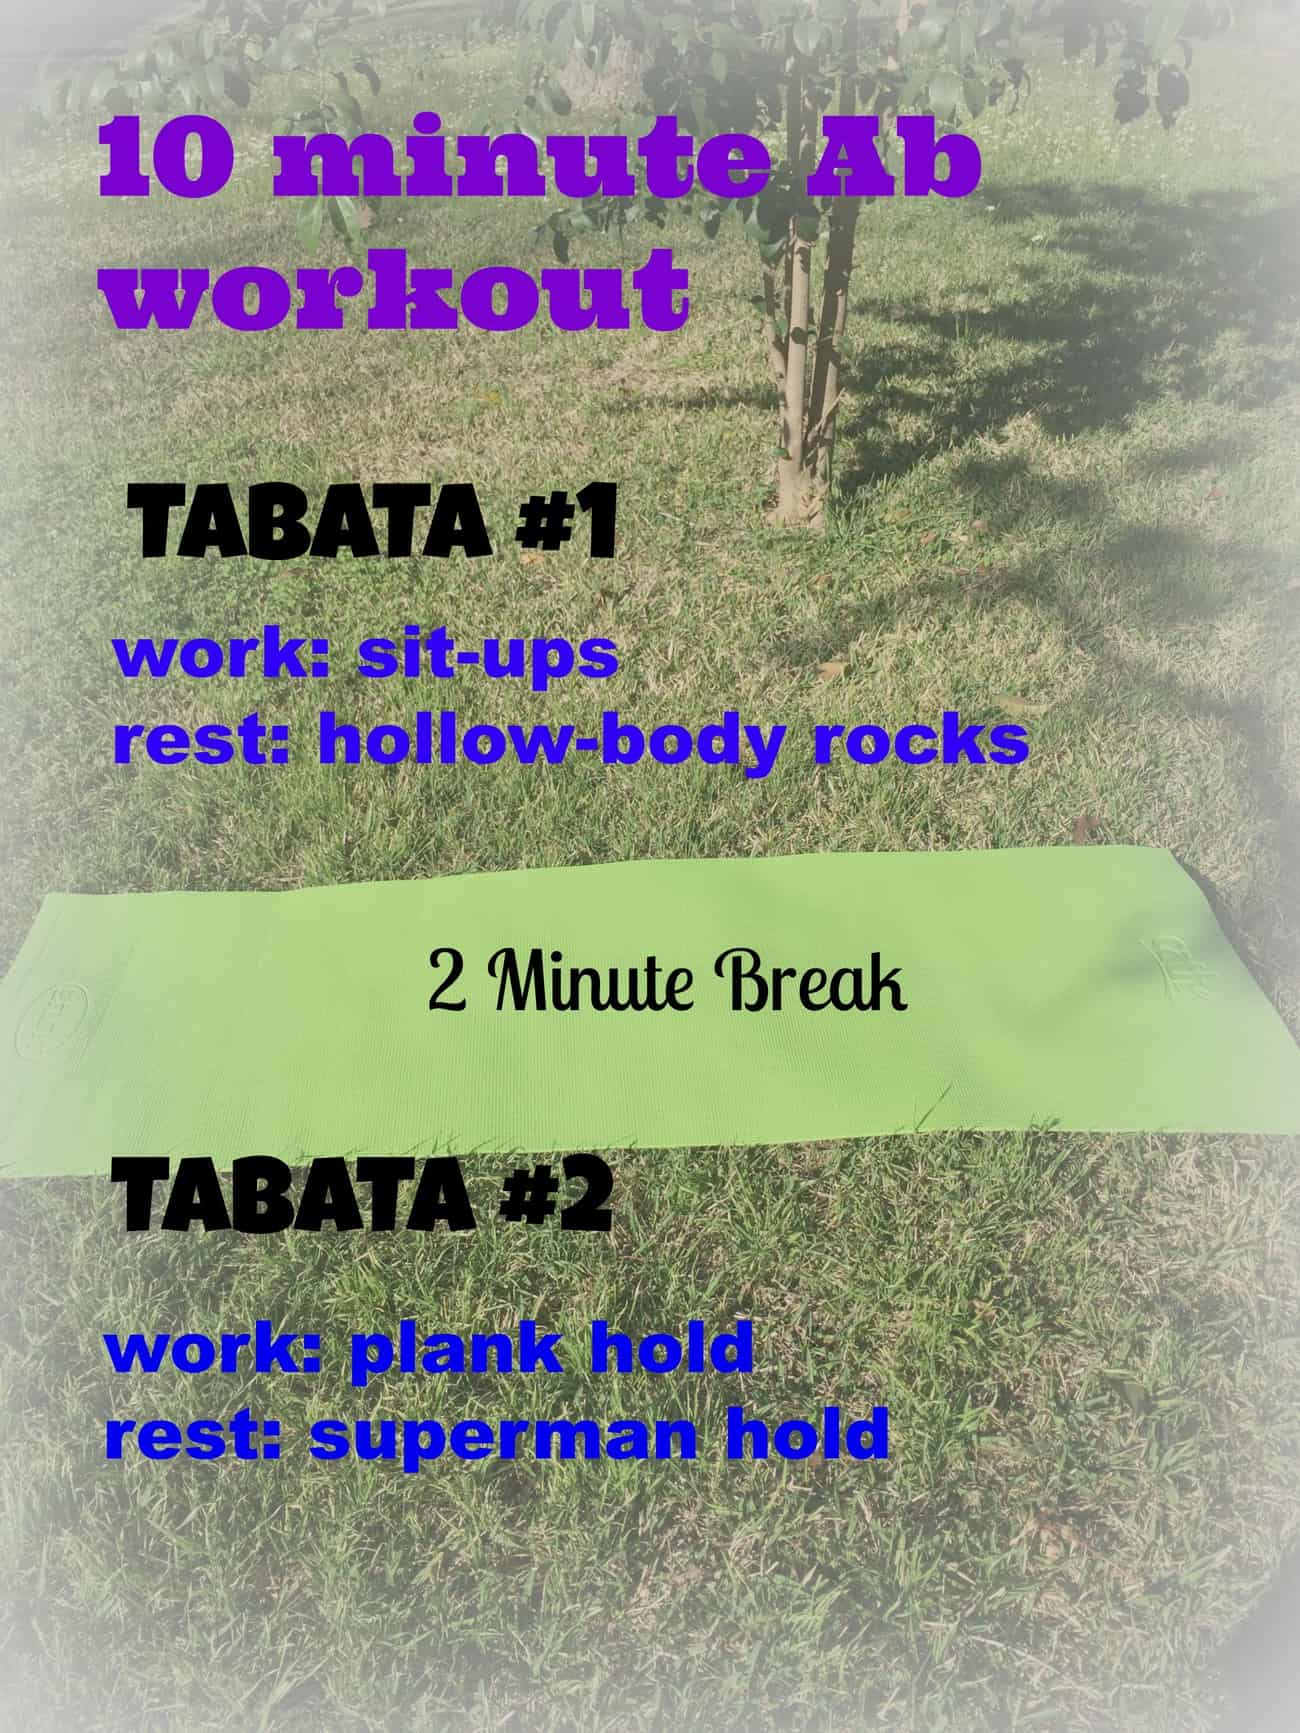 10 min ab workout text